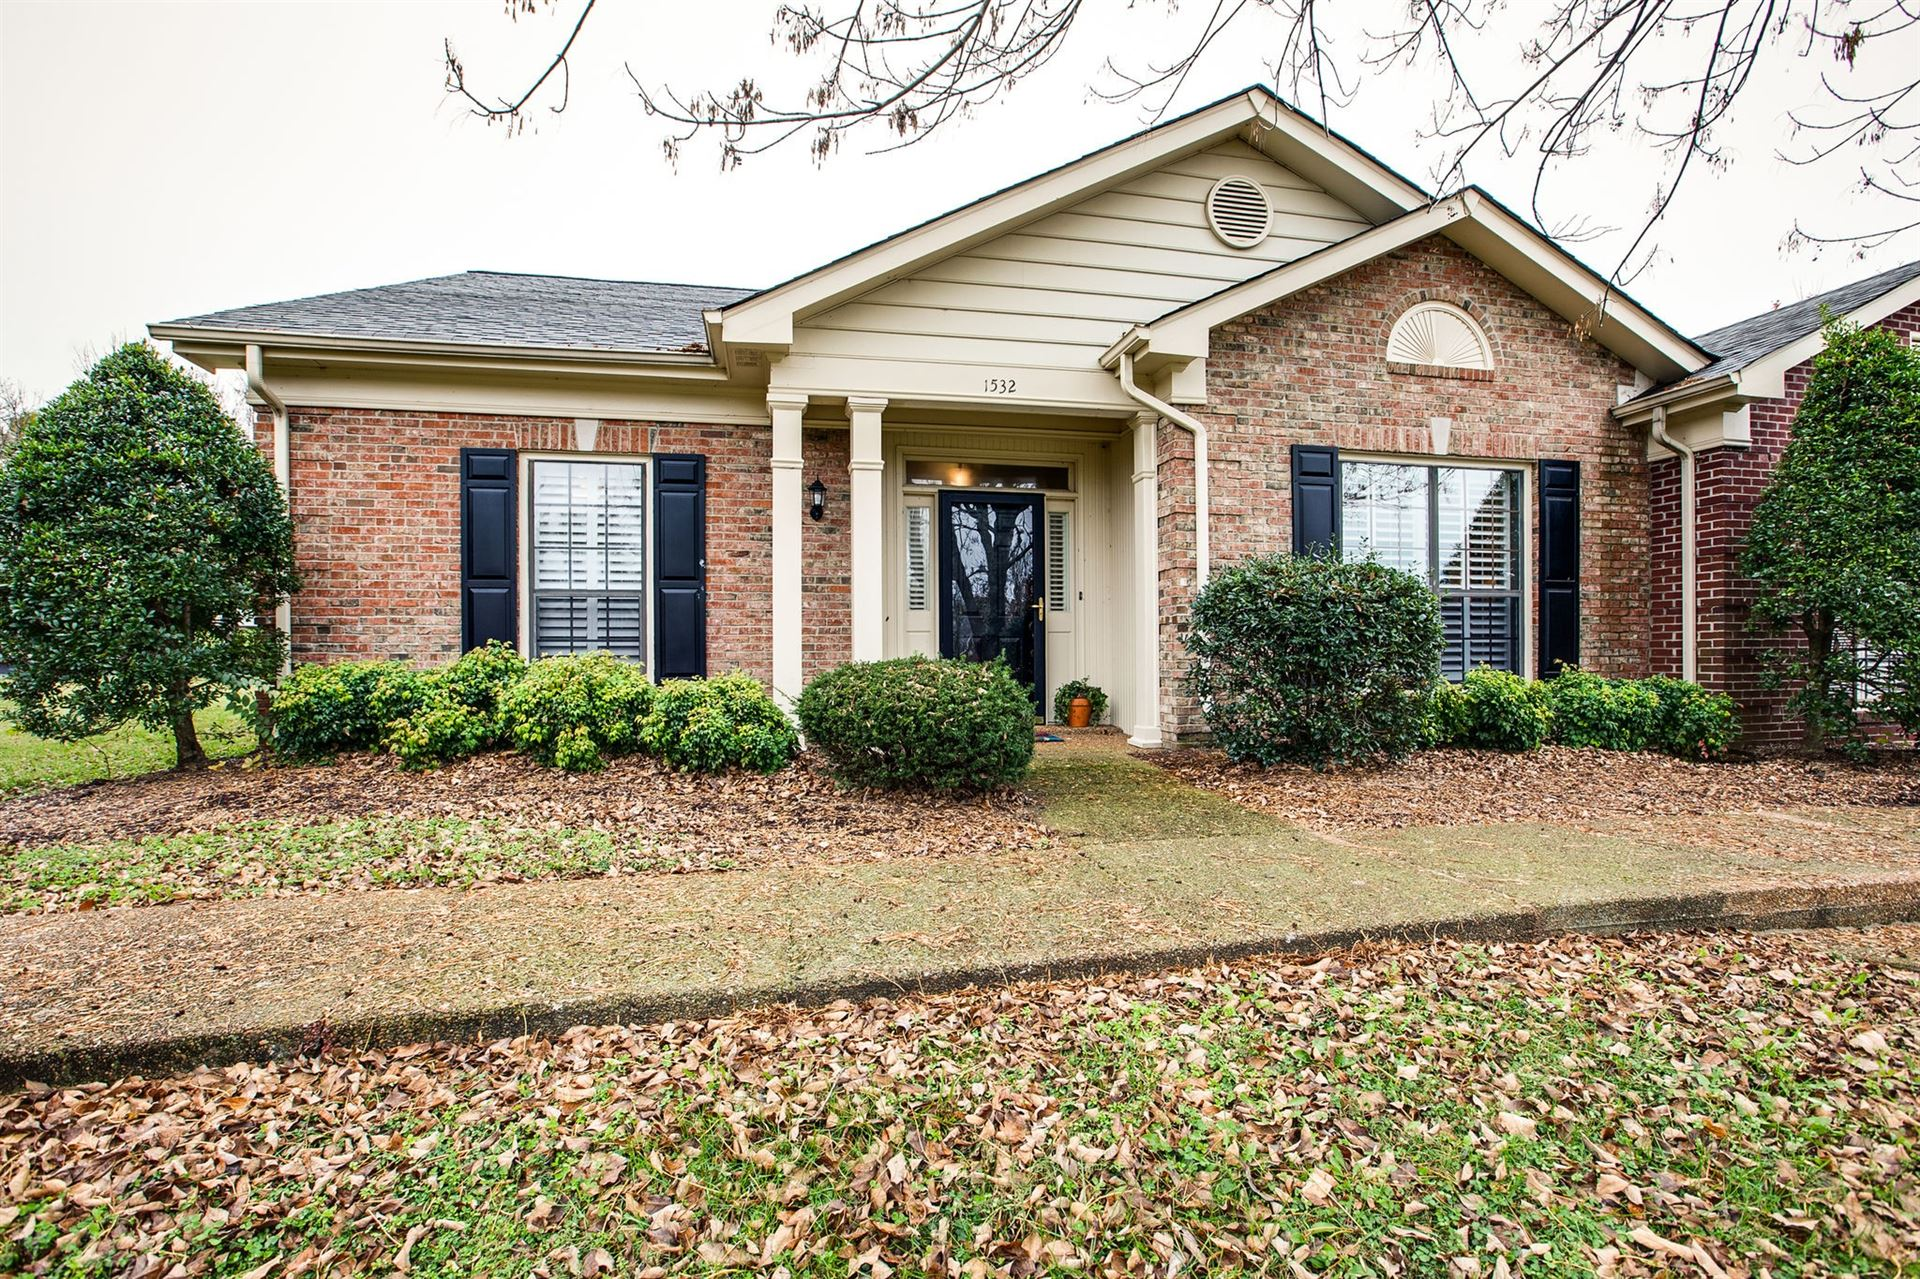 Photo of 1532 Brentwood Pointe, Franklin, TN 37067 (MLS # 2169573)